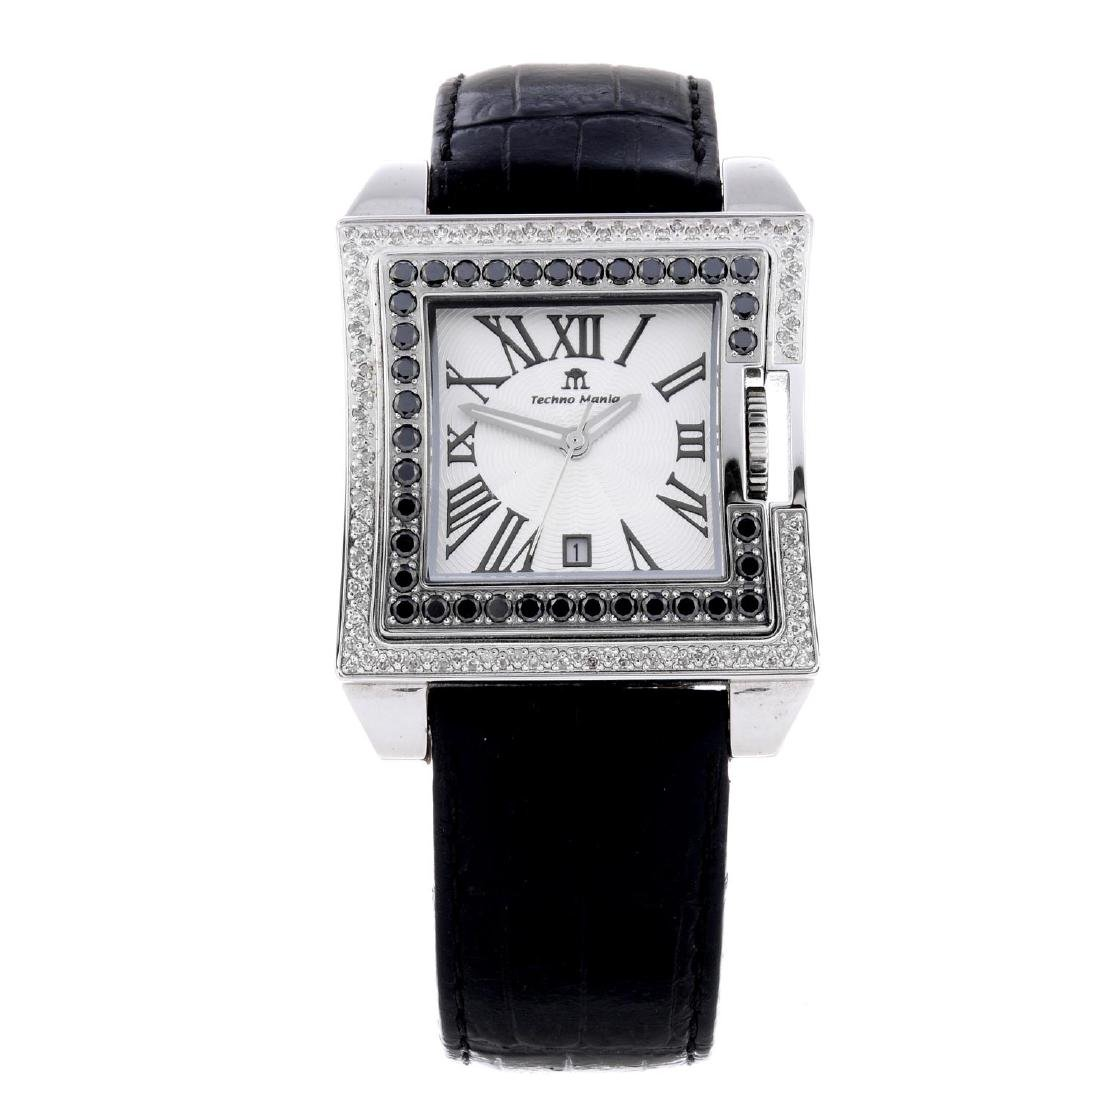 TECHNO MANIA - a wrist watch. Stainless steel case with